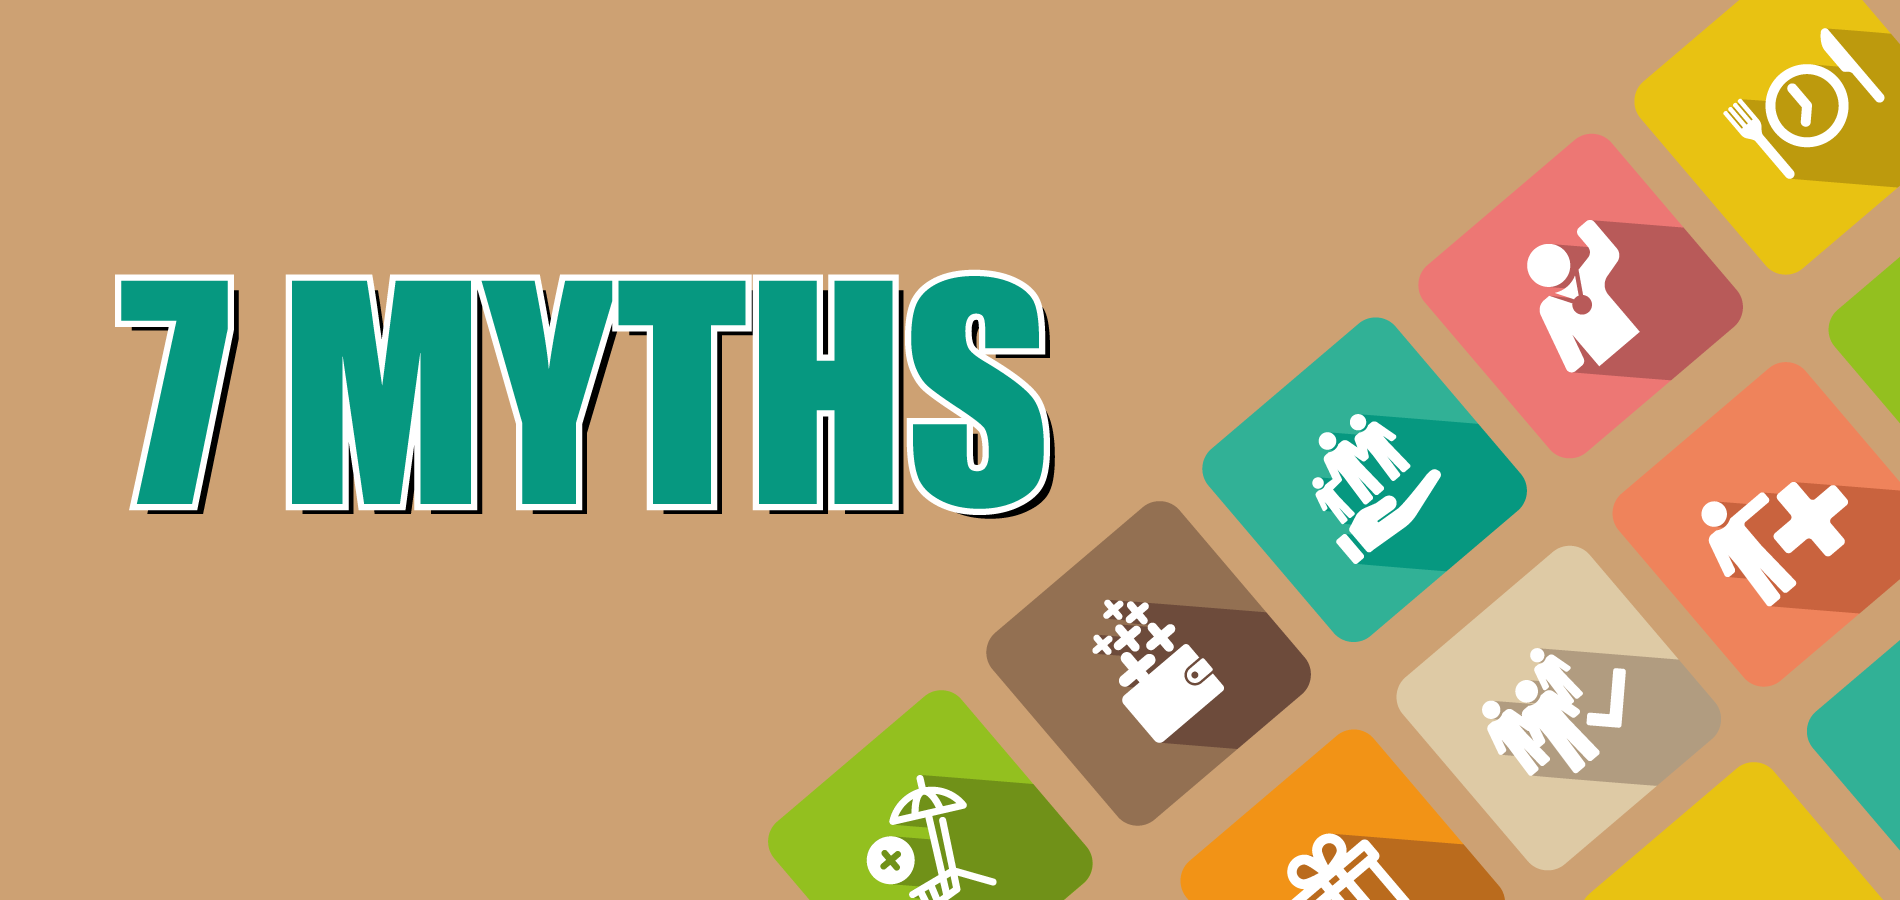 7 myths employee benefits.png